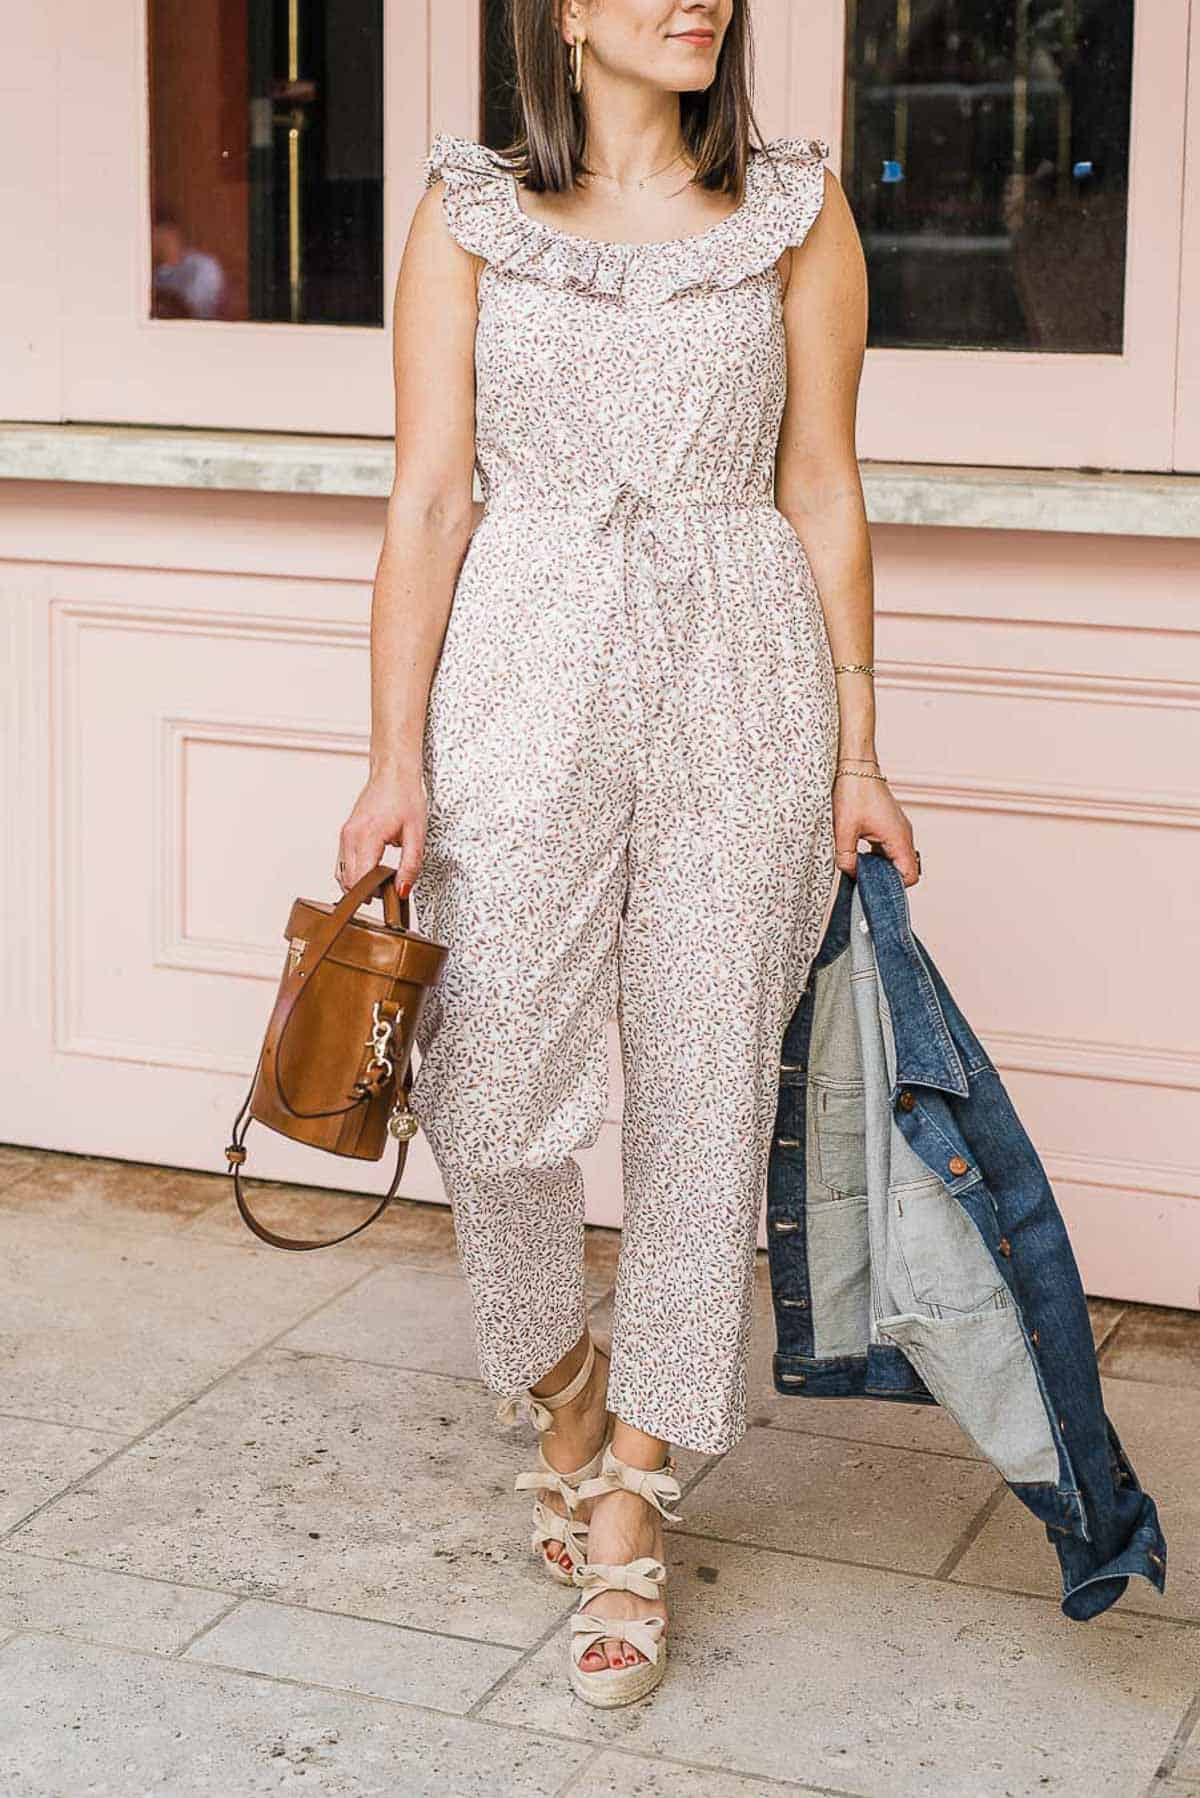 """MY STYLE VITA""""S OUTFIT DETAILS: GAL MEETS GLAM COLLECTION 'RUE' JUMPSUIT • CASTANER WEDGES • BRAHMIN BAG • MADEWELL DENIM JACKET"""